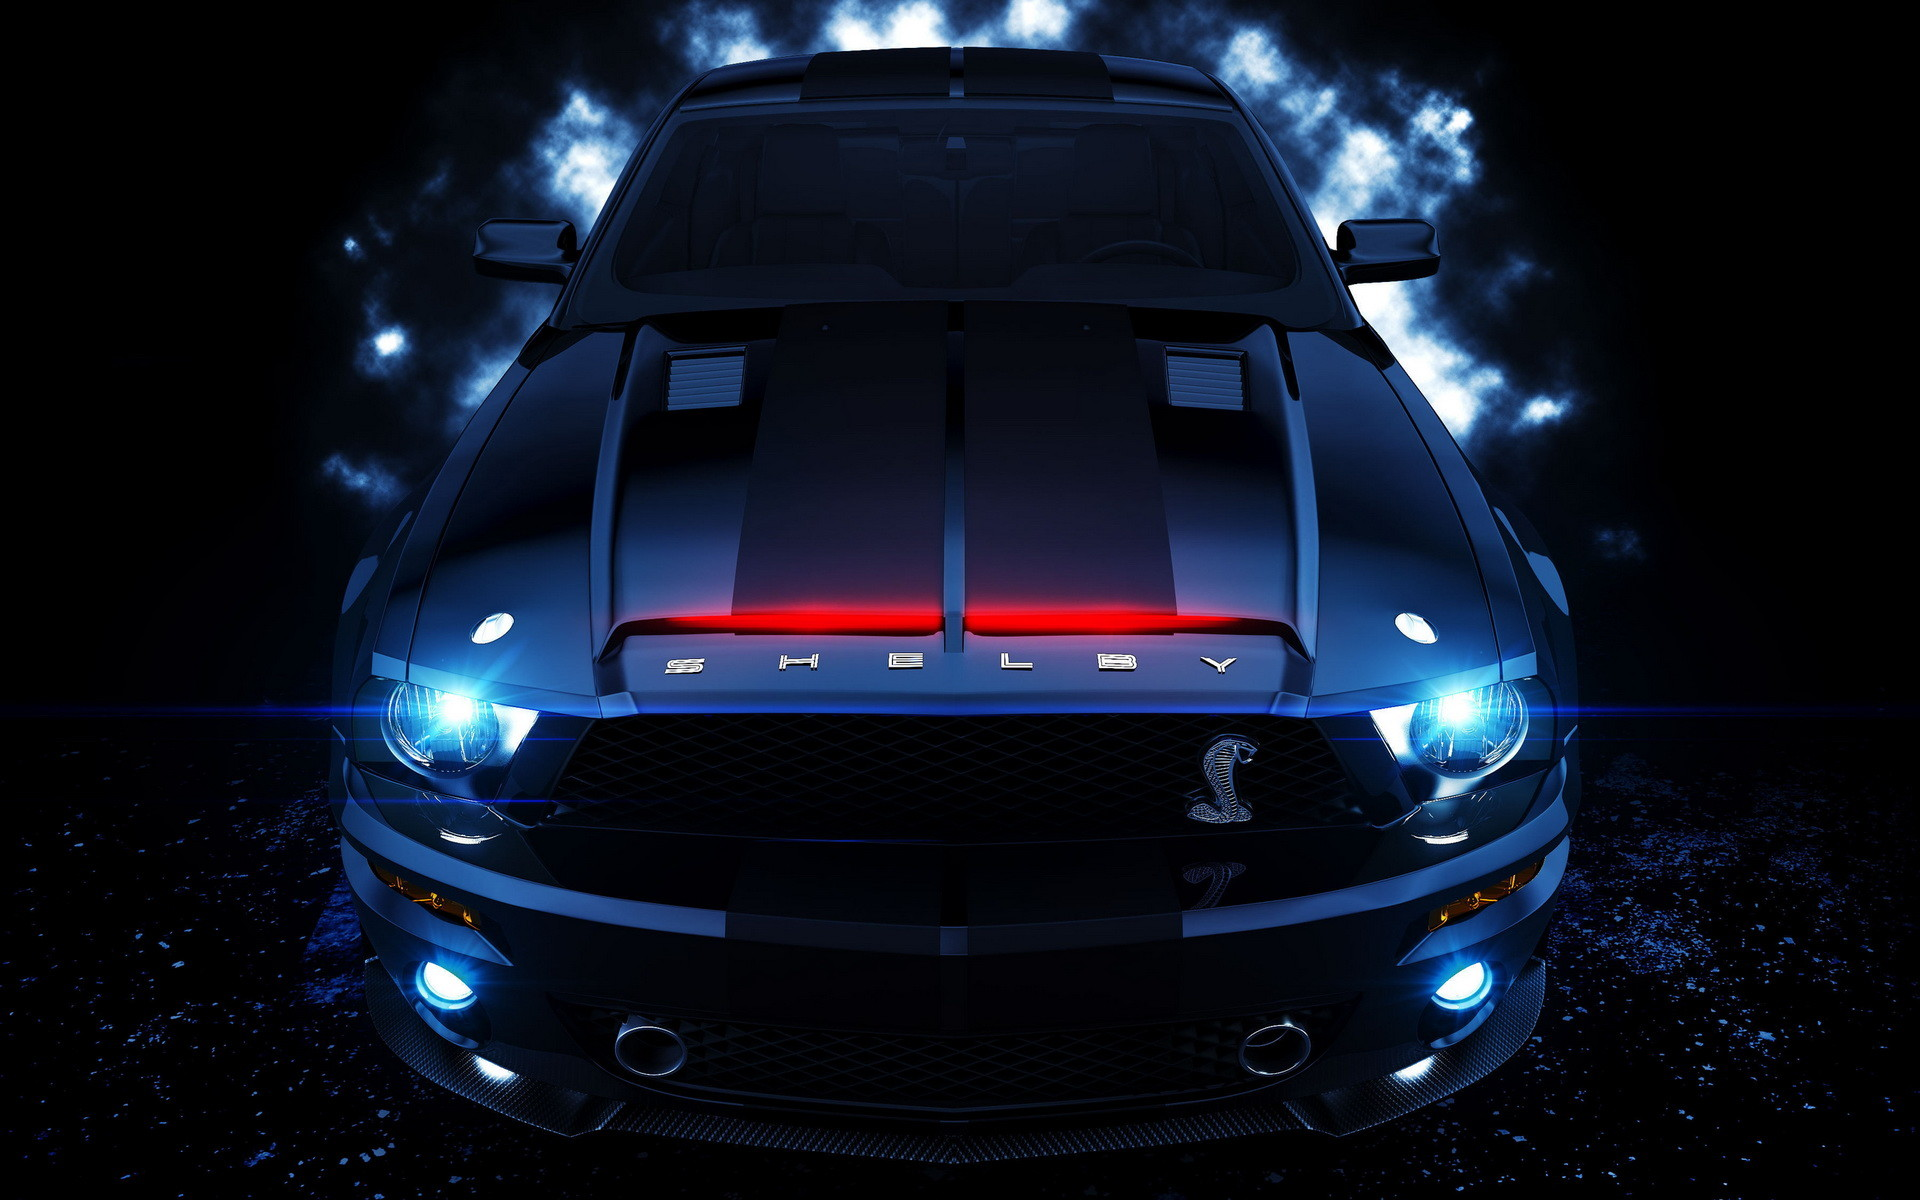 Ford Mustang Shelby Cobra Hd Wallpapers Backgrounds Wallpaper